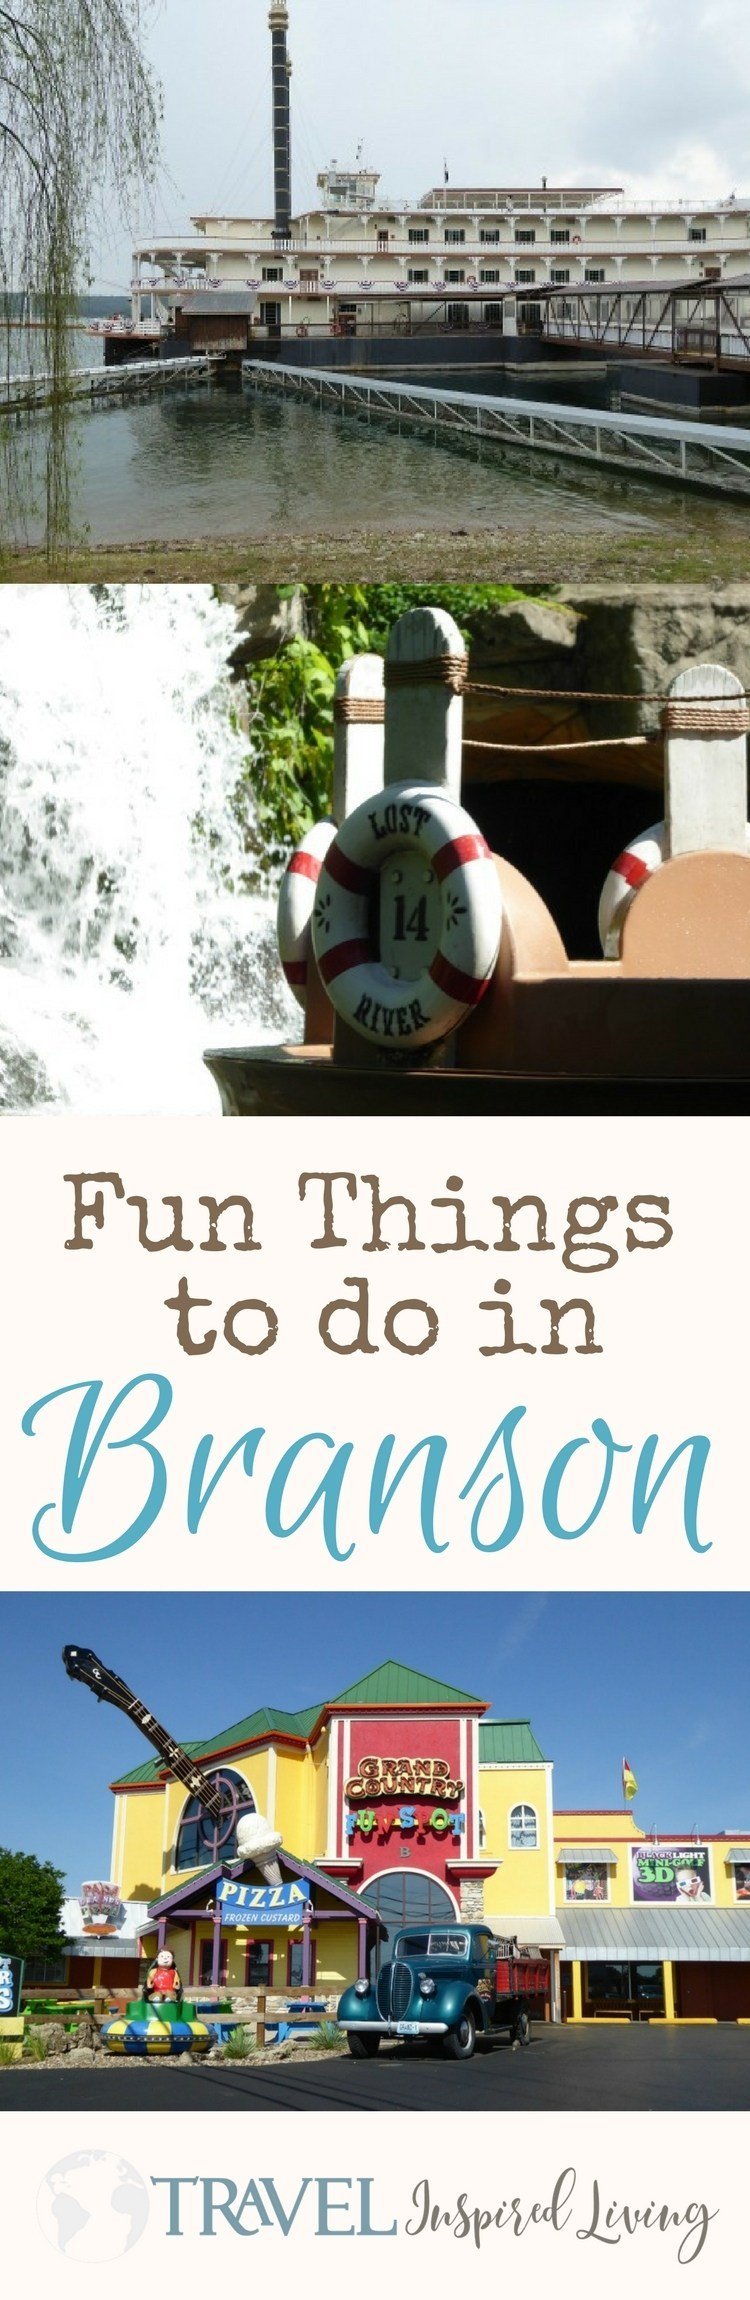 Fun things to do in Branson, Missouri for families and couples.